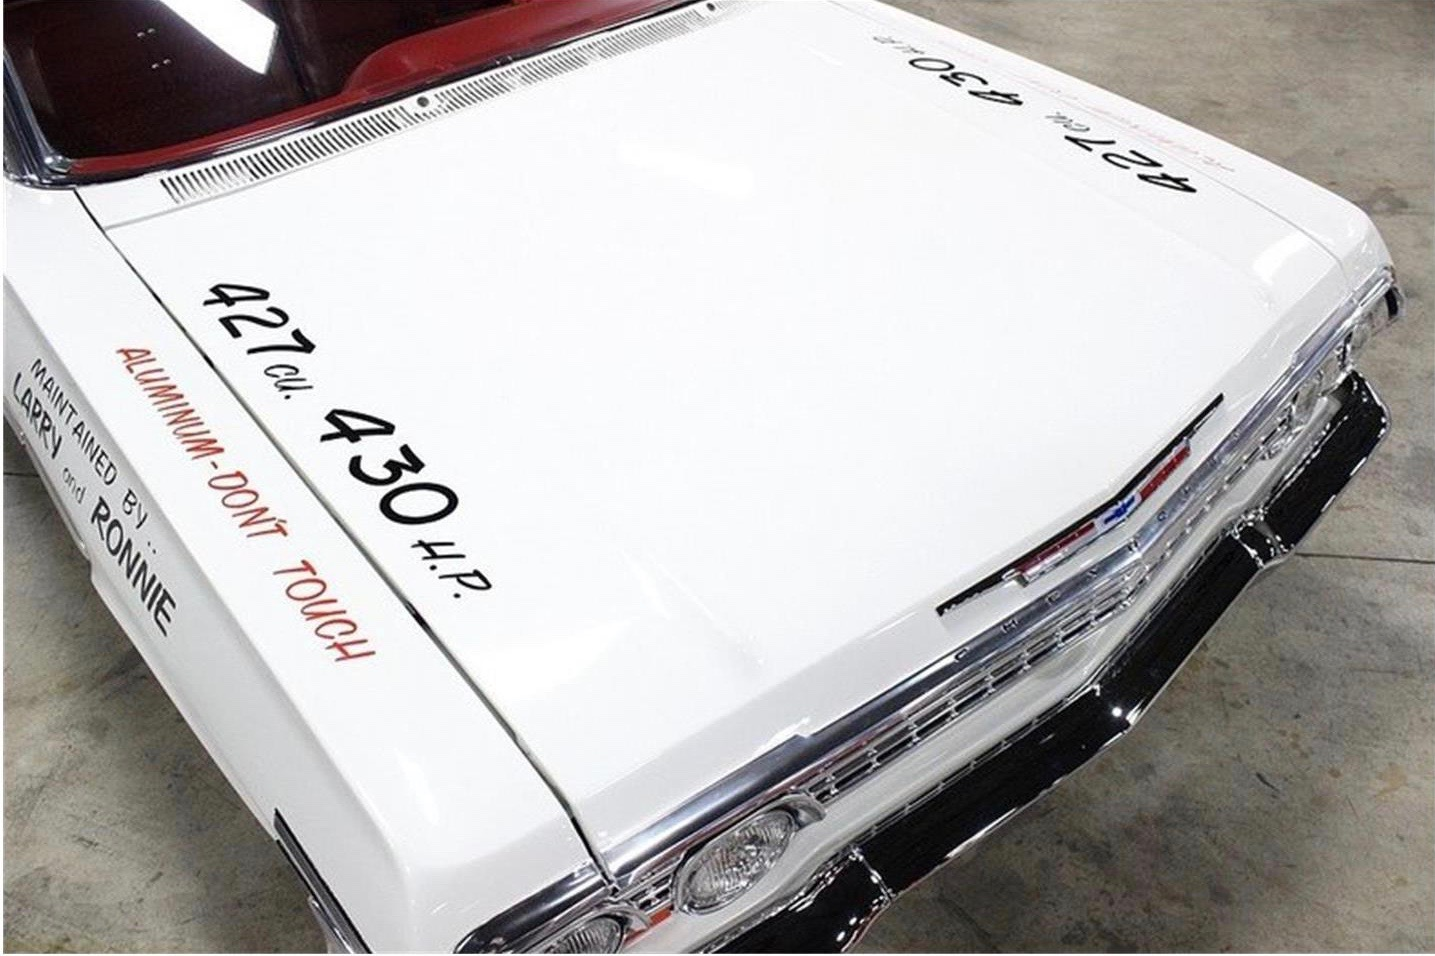 1963 Chevrolet Impala, Before muscle cars, Detroit was packing a big punch in its big cars, ClassicCars.com Journal